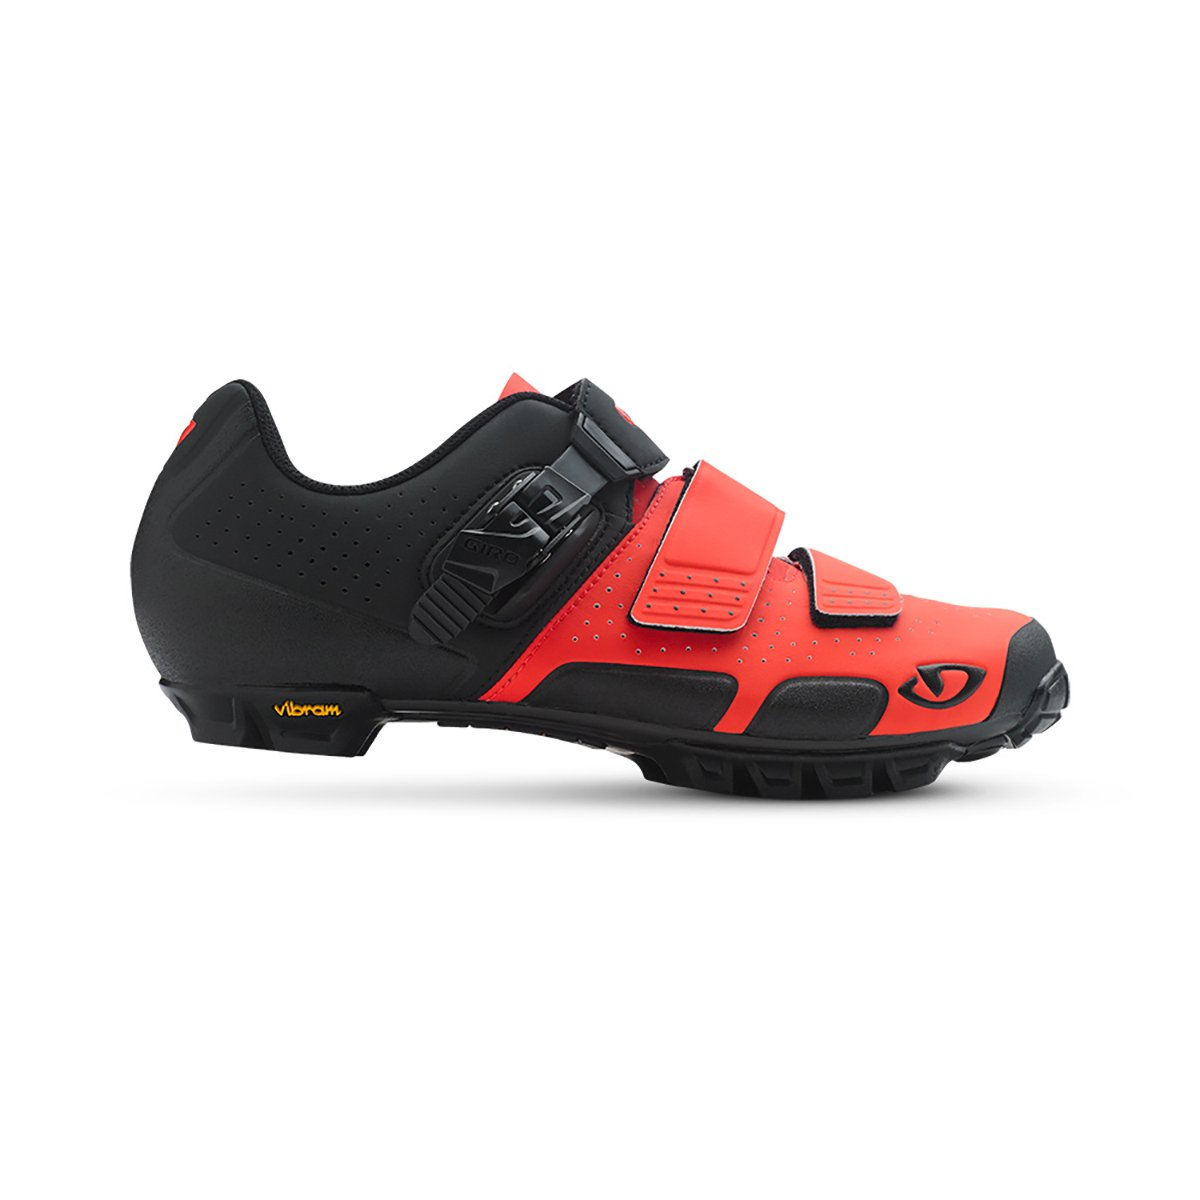 Giro Code Vr70 SPD Mountain Bike Shoes Vermillion/Black 44 by Giro